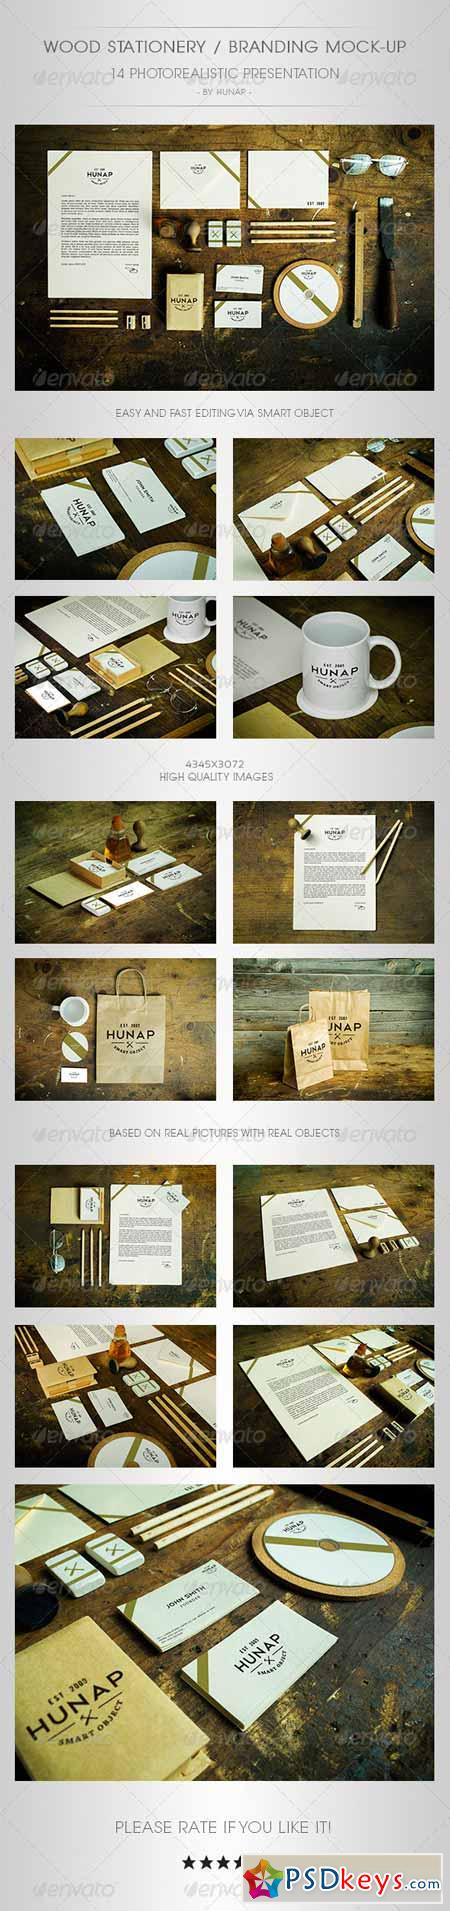 Wood Stationery Branding Mock-Up 5321066